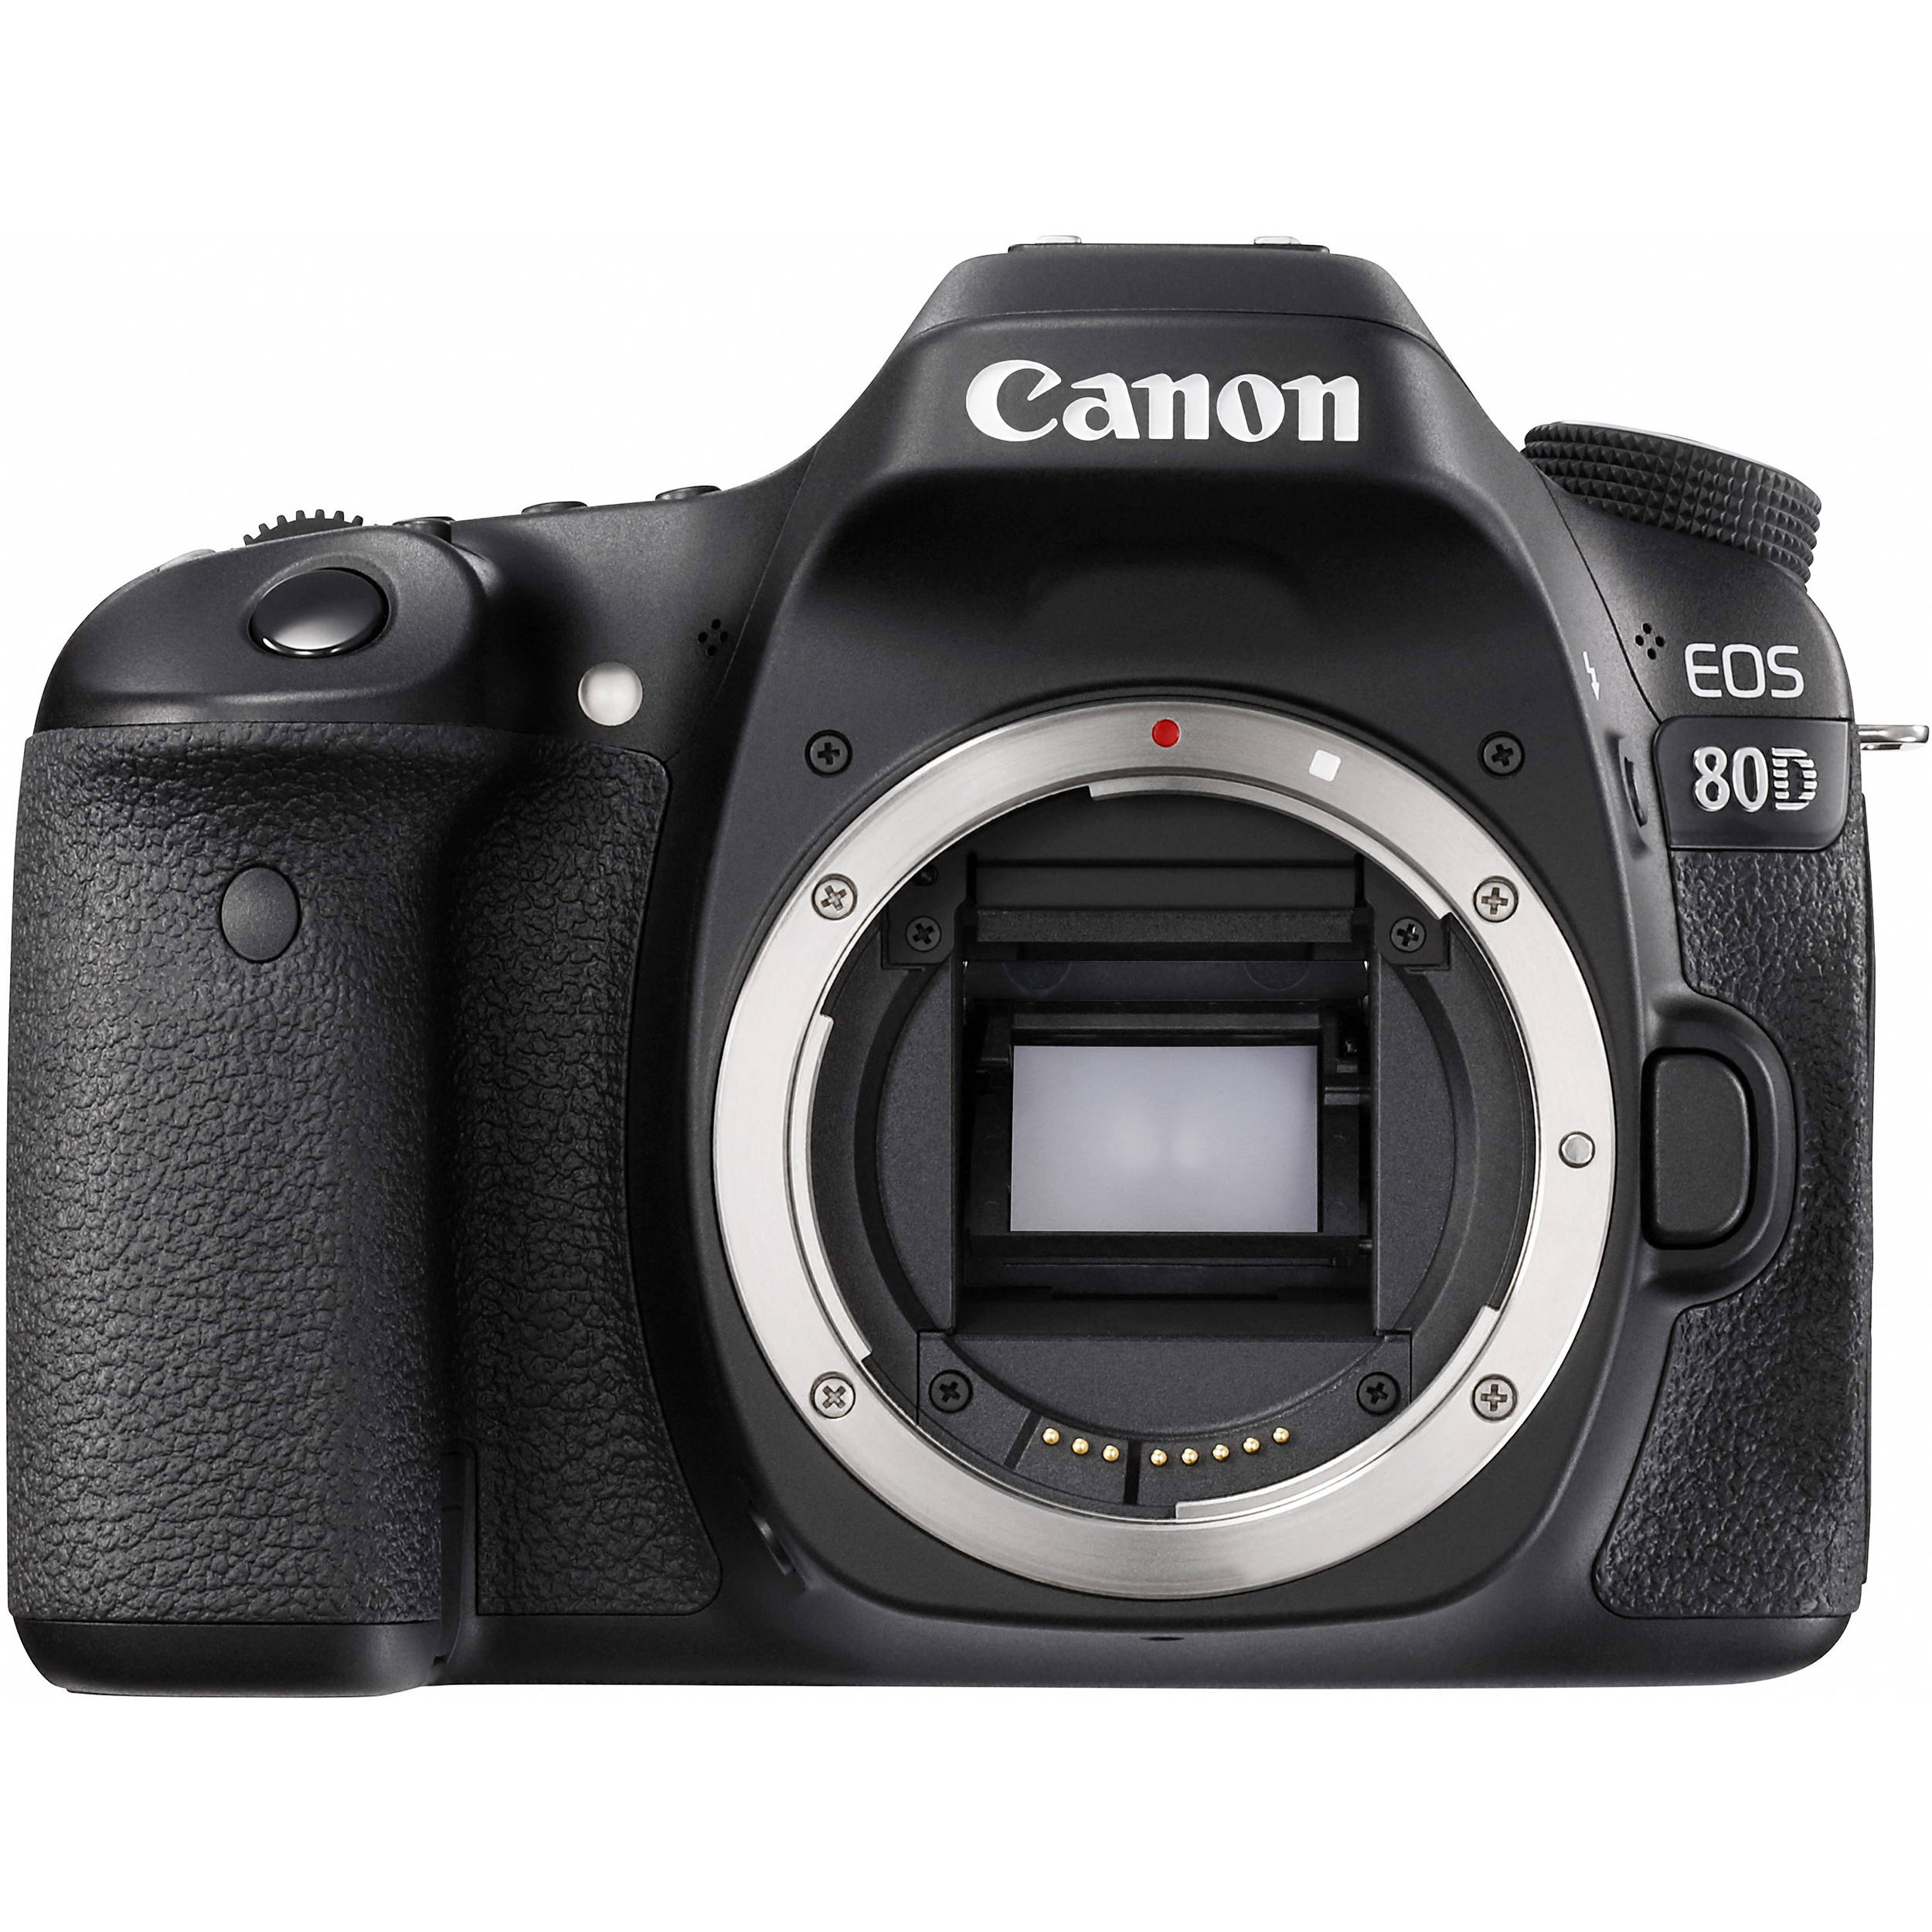 Canon 80D Replacement for Canon 70D | B&H Photo Video